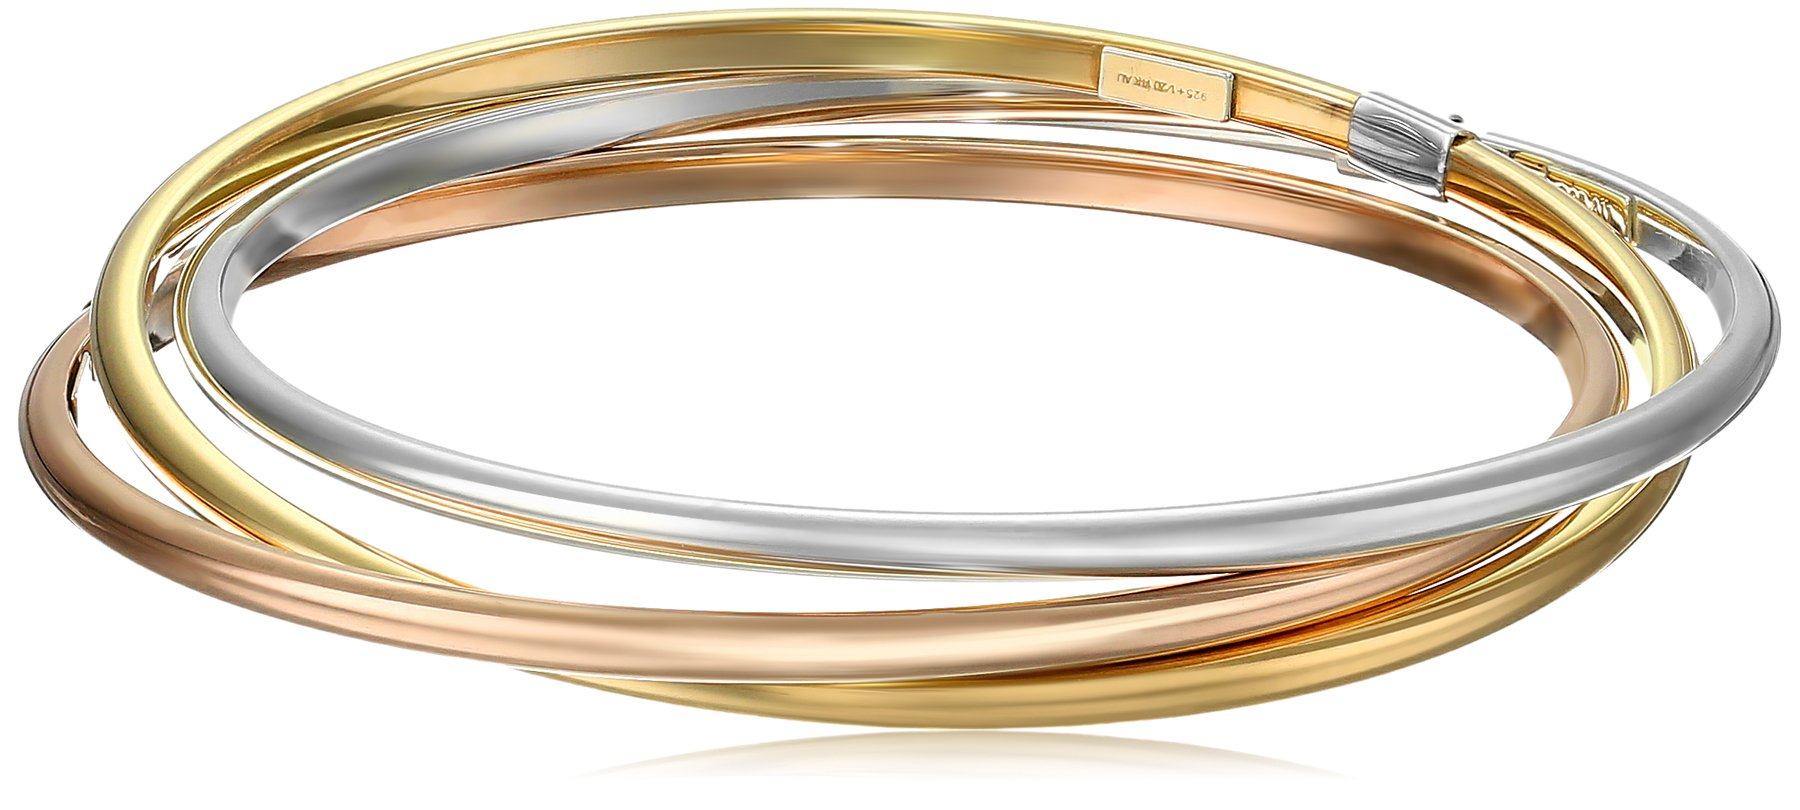 14k Gold-Bonded Sterling Silver Tri-Color Interlocking Bangle Bracelets, 8''